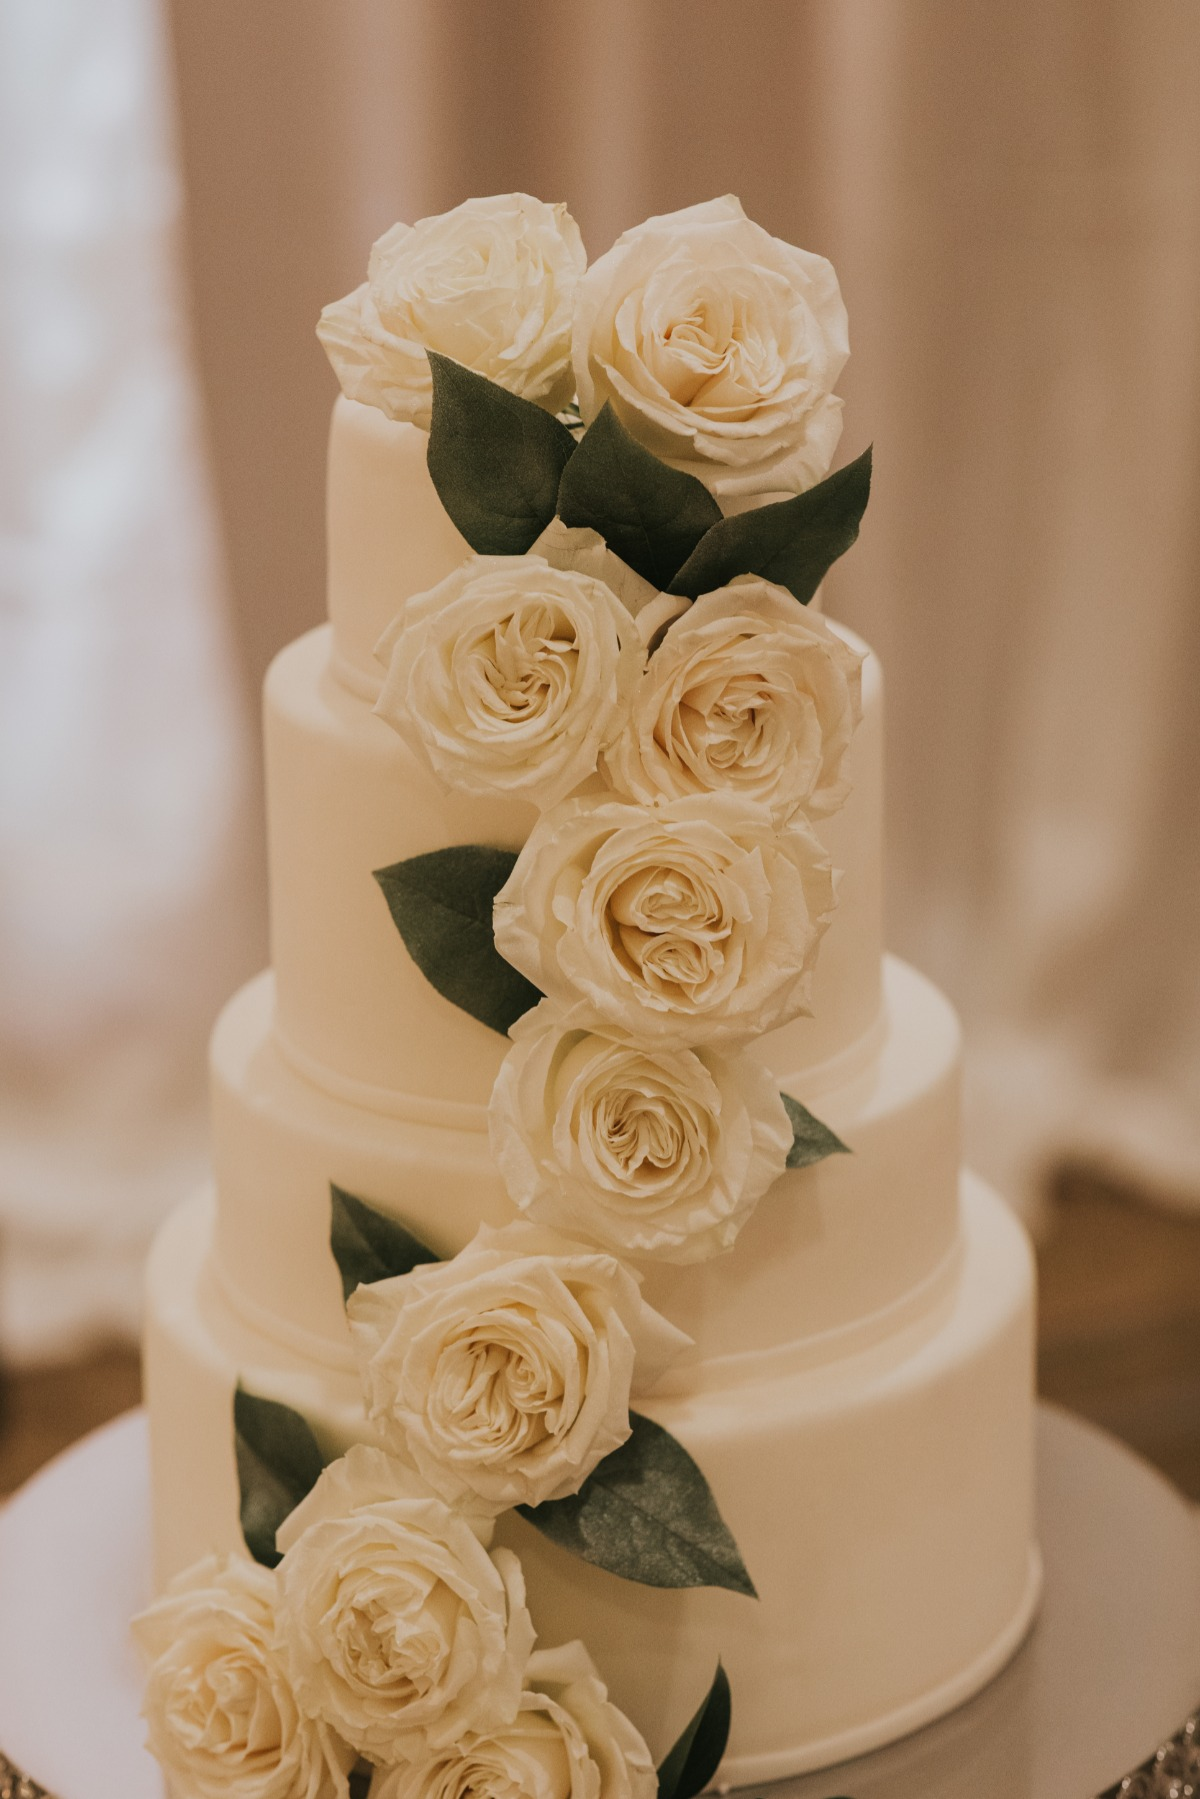 white wedding cake adorned with fresh white roses